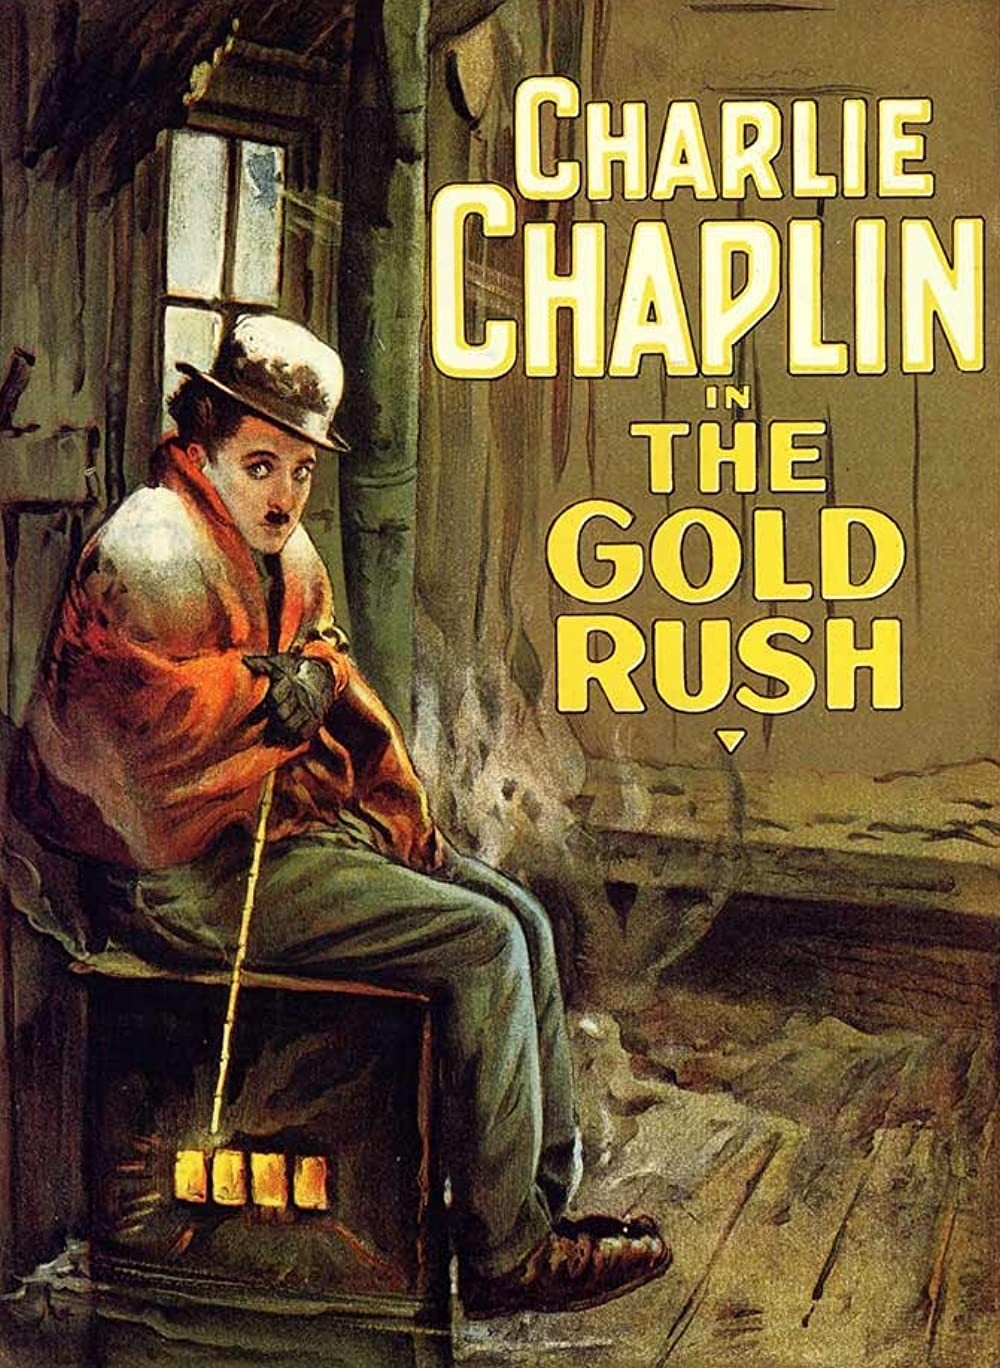 THE GOLD RUSH [1925]